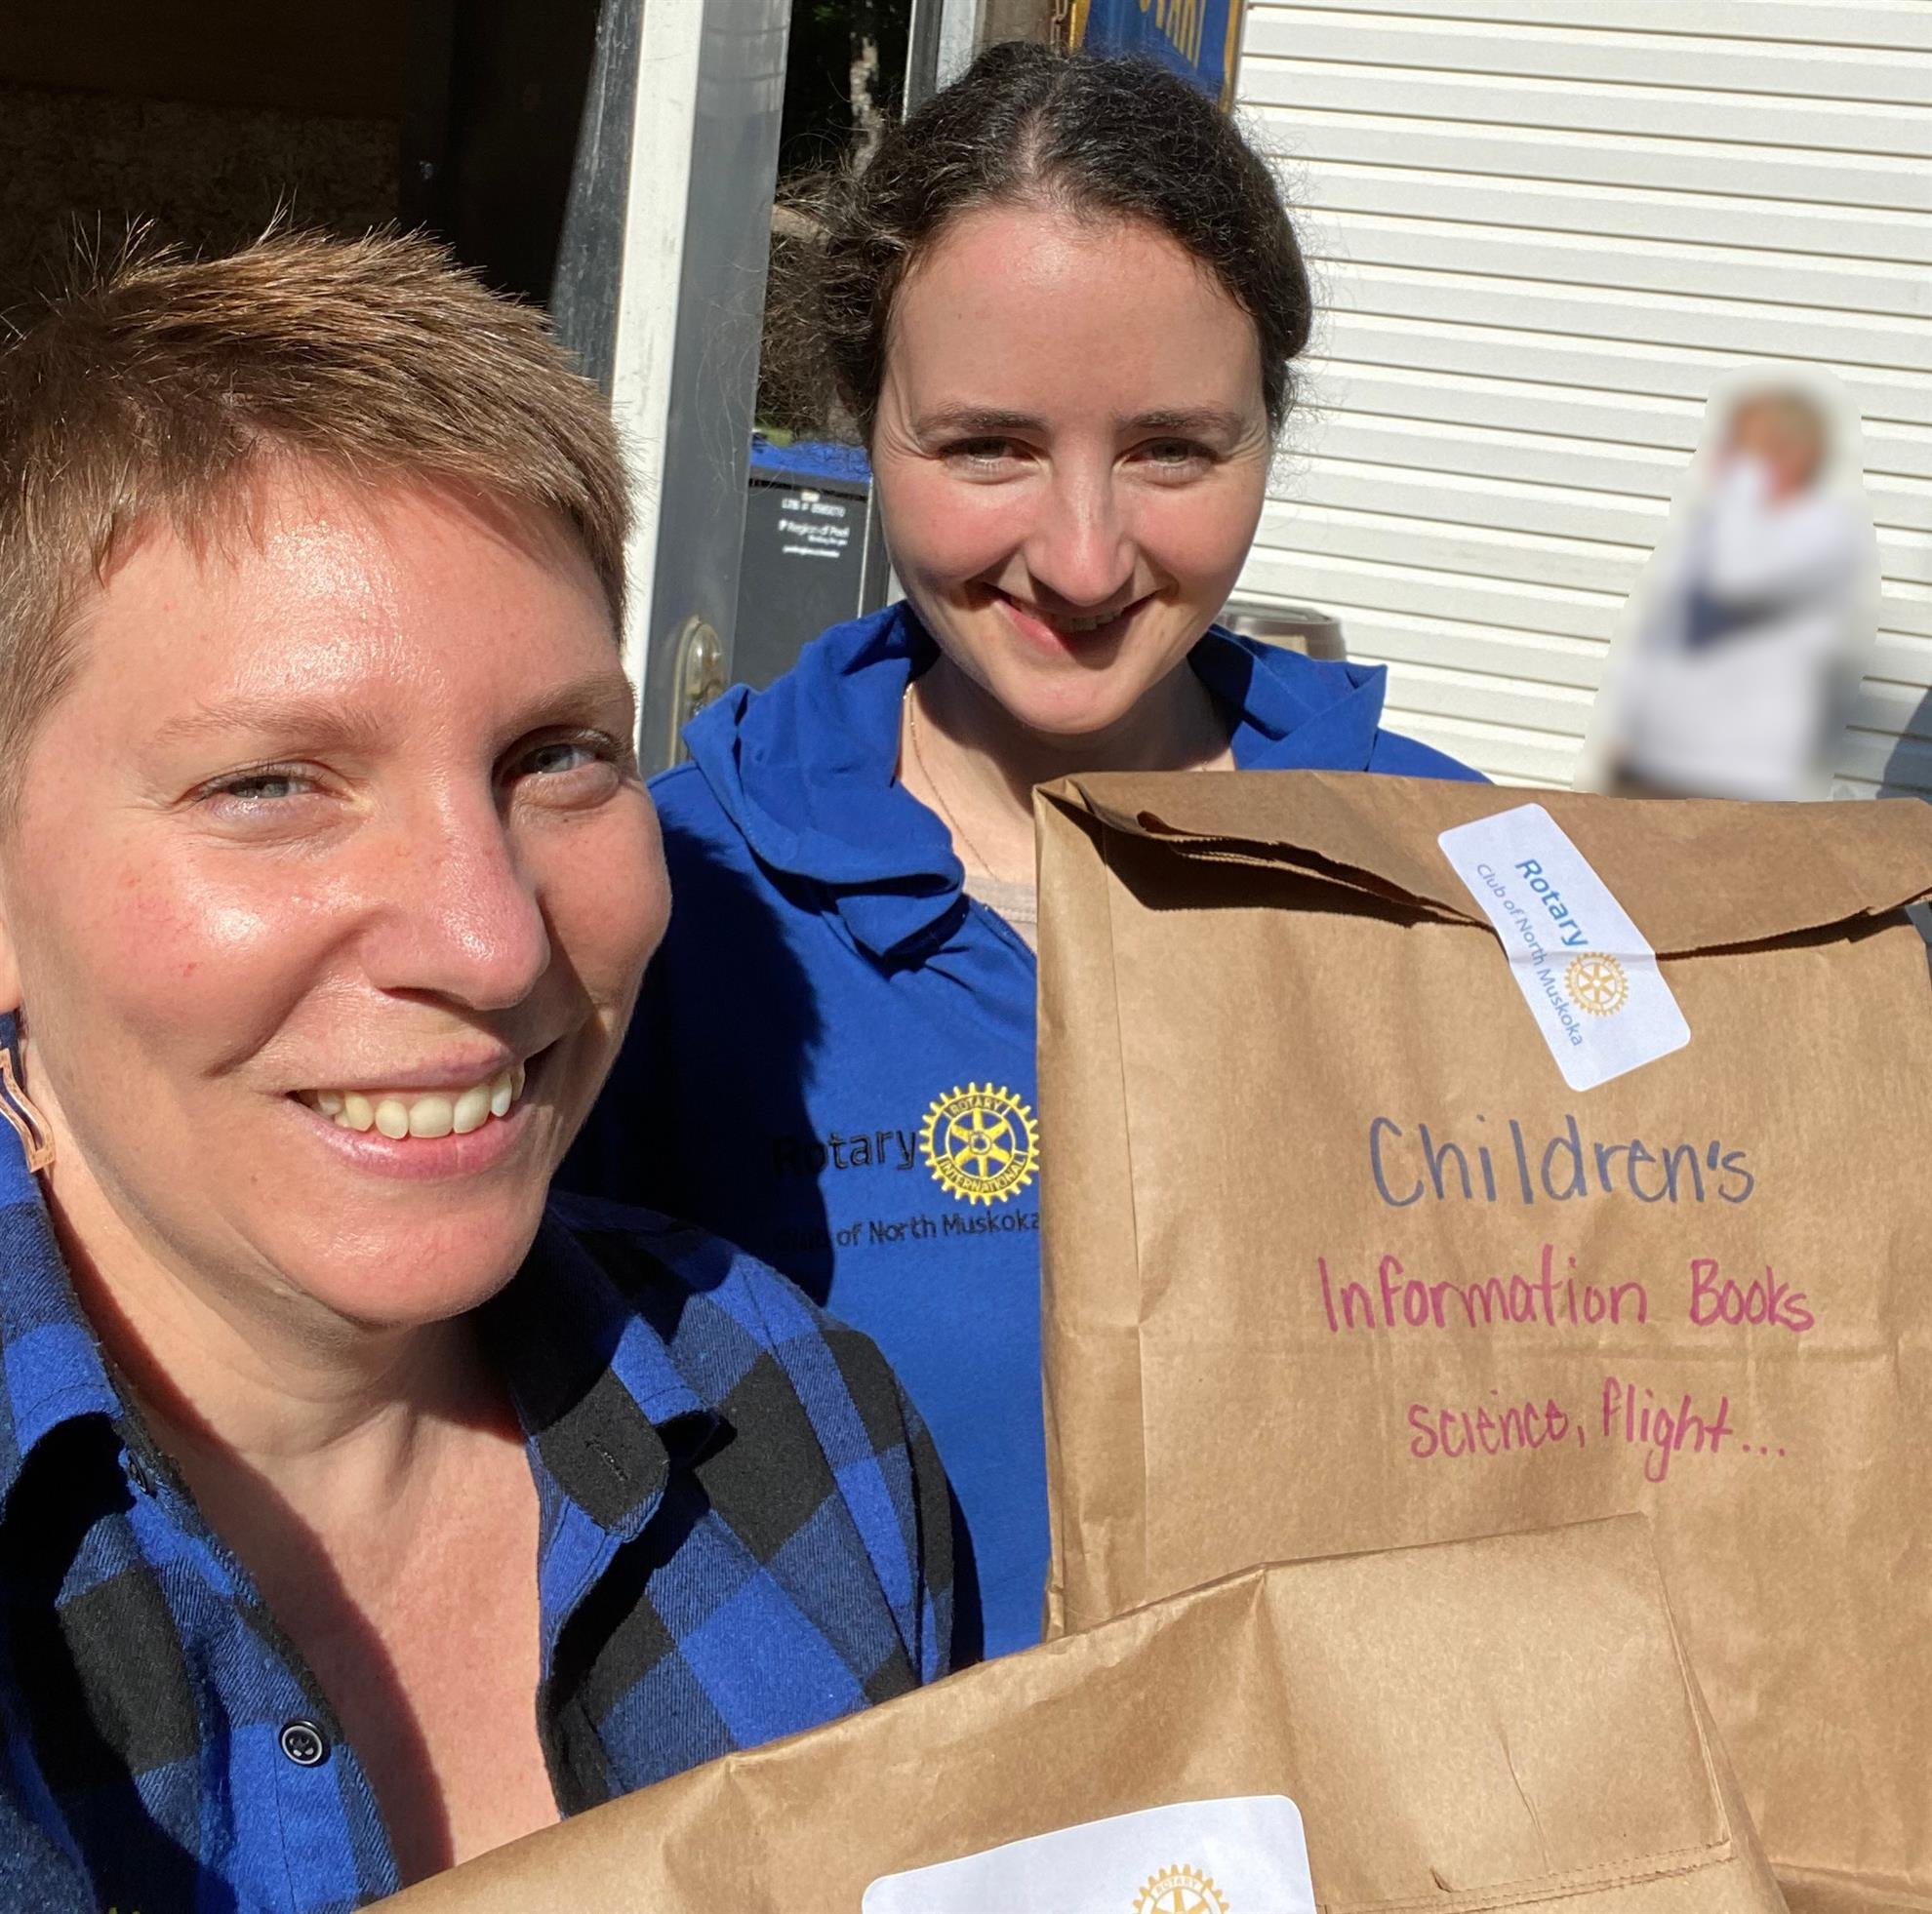 Two women take a close up selfie outside on a sunny day. They hold brown paper bags. One bag reads: Children's Information Books, Science, Flight ...